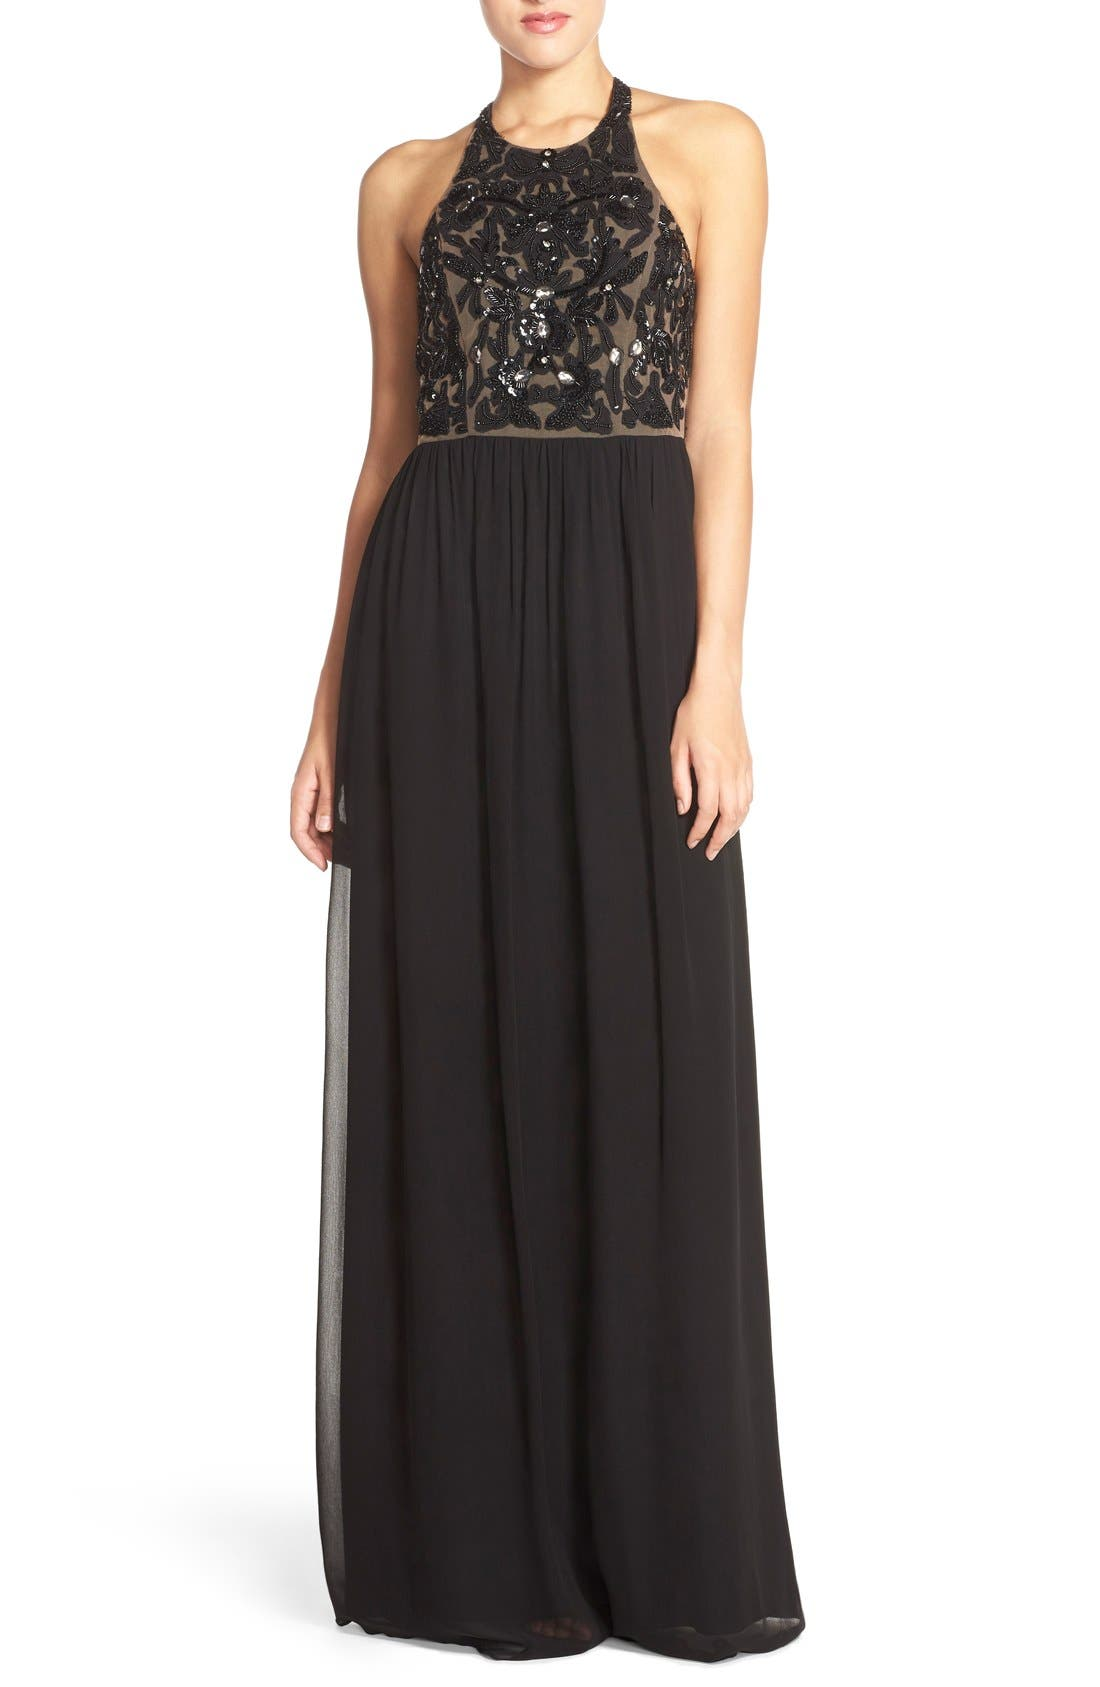 Alternate Image 1 Selected - Parker 'Cassey' Embellished Bodice Halter Style Gown